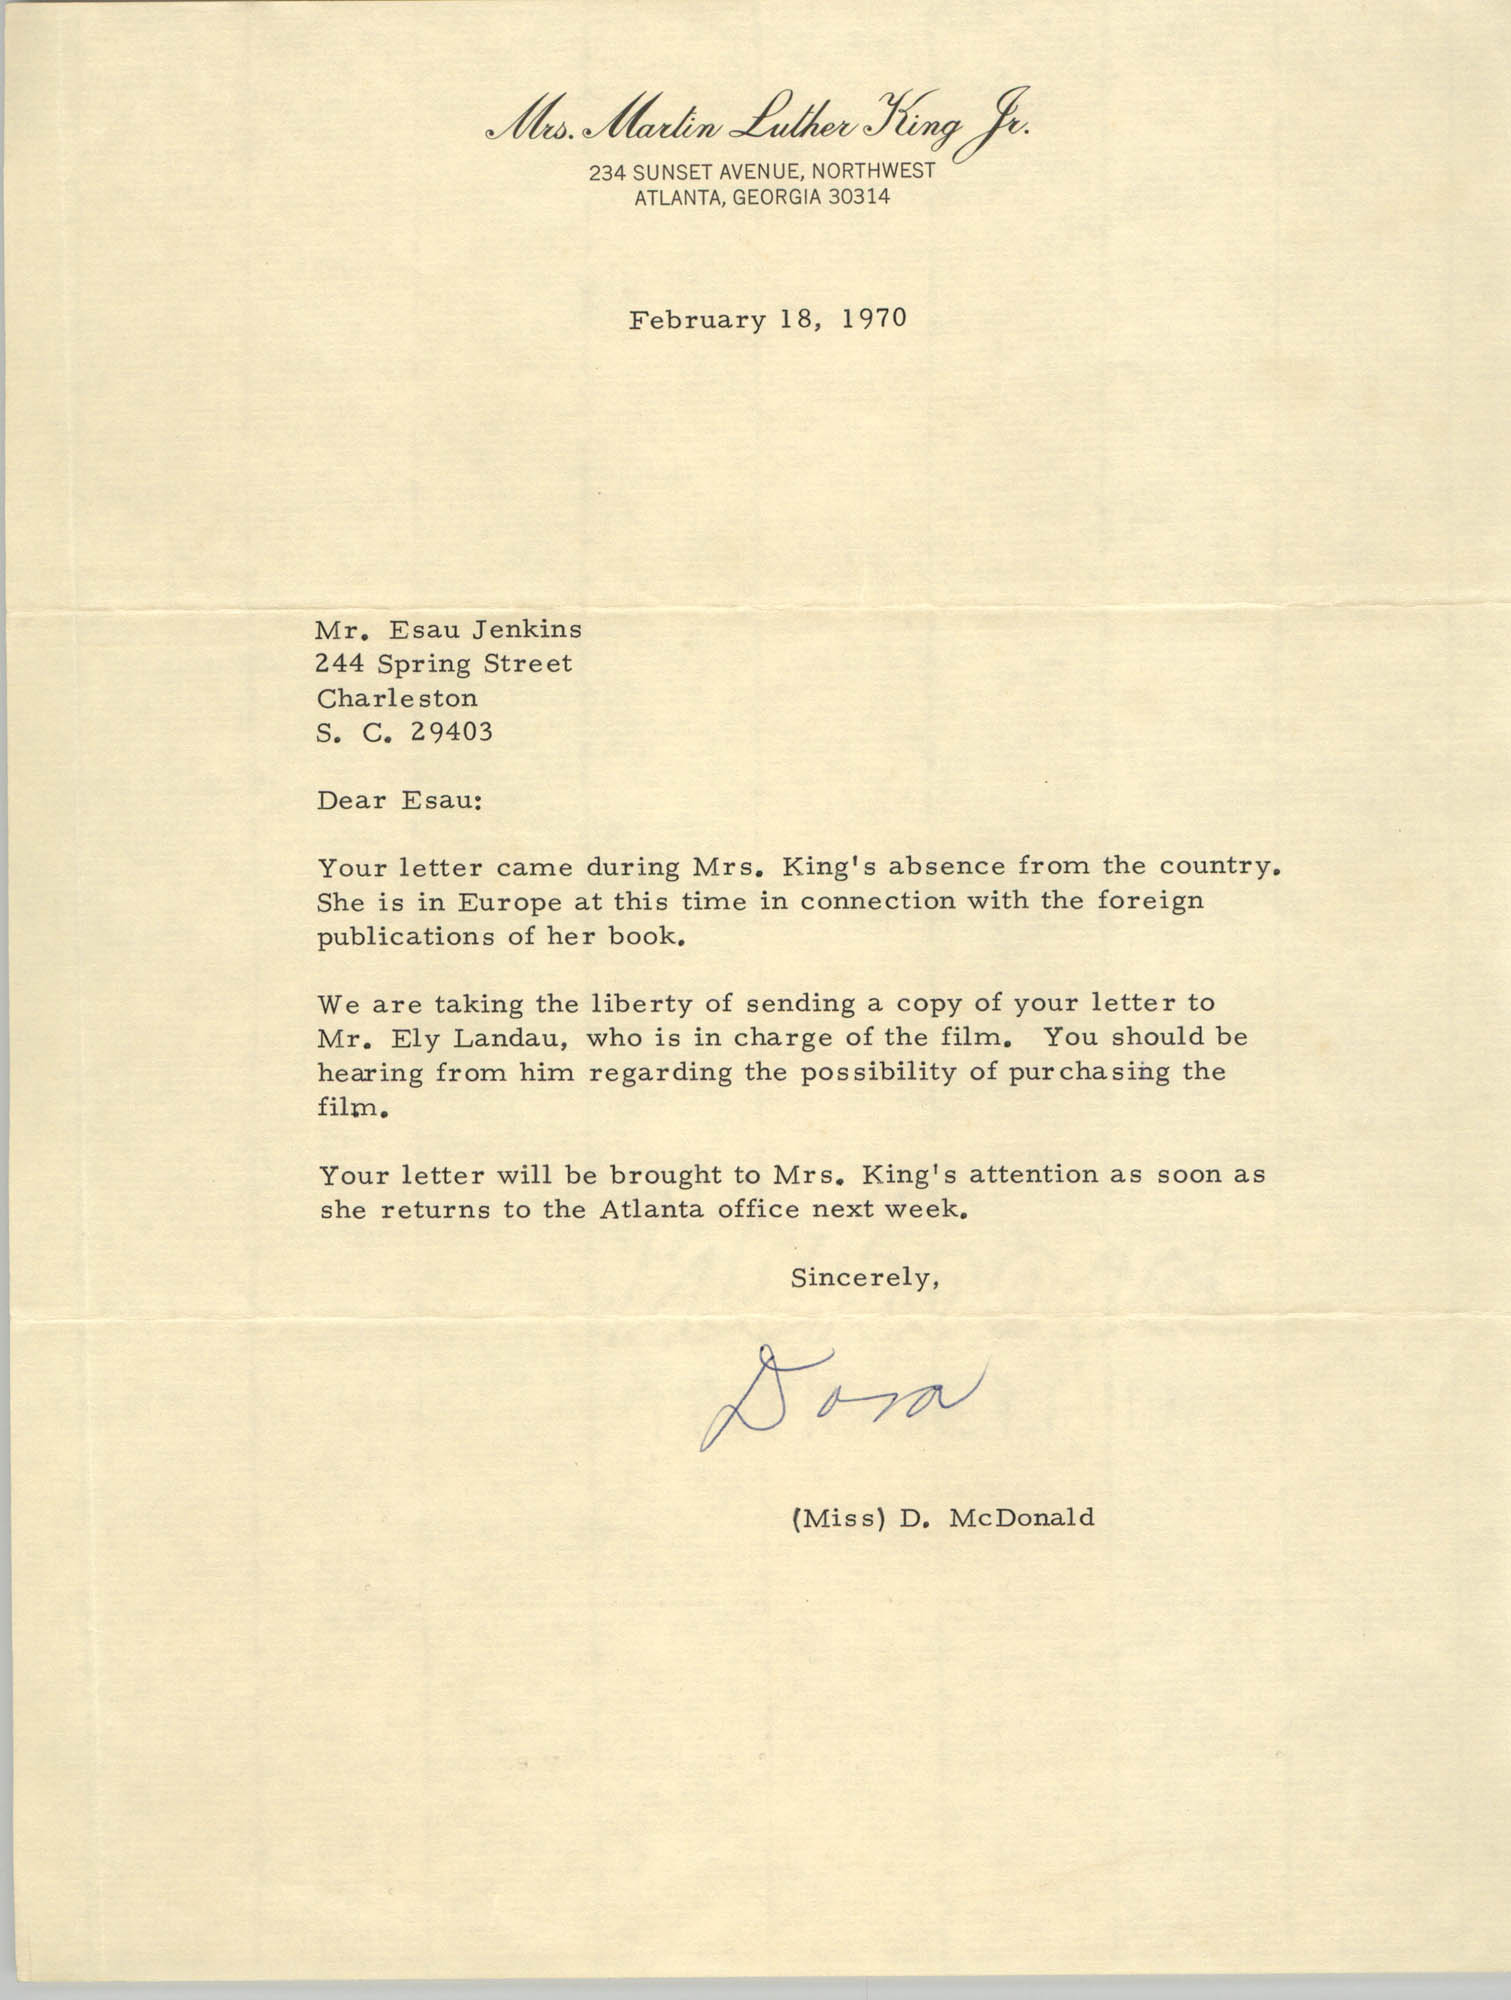 Letter from D. McDonald to Esau Jenkins, February 18, 1970